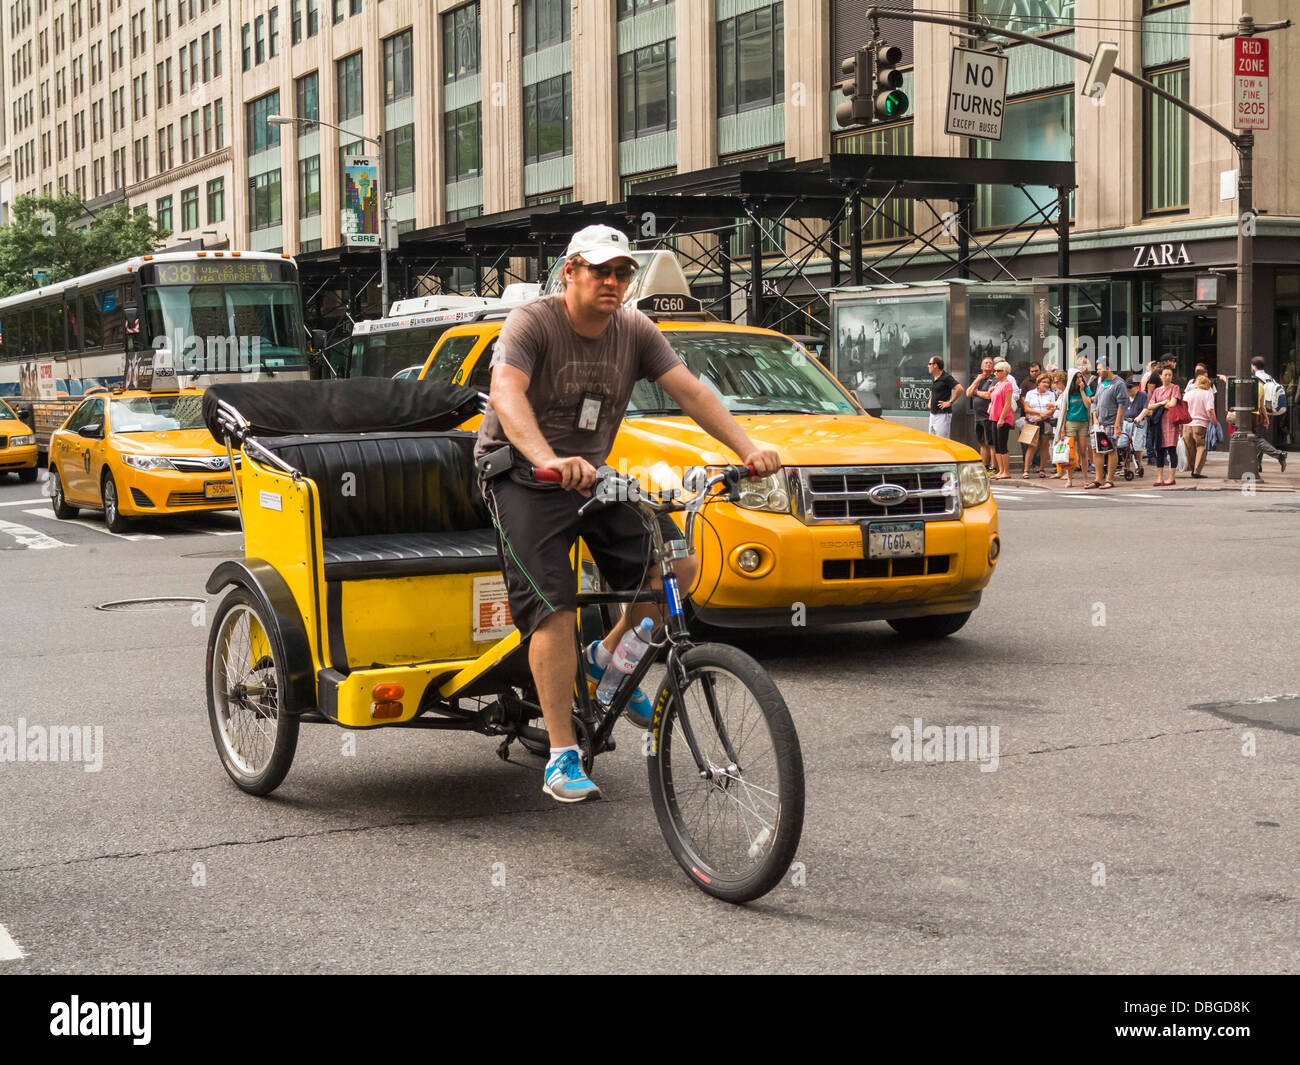 Pedicab taxi cyclist in New York City - Stock Image